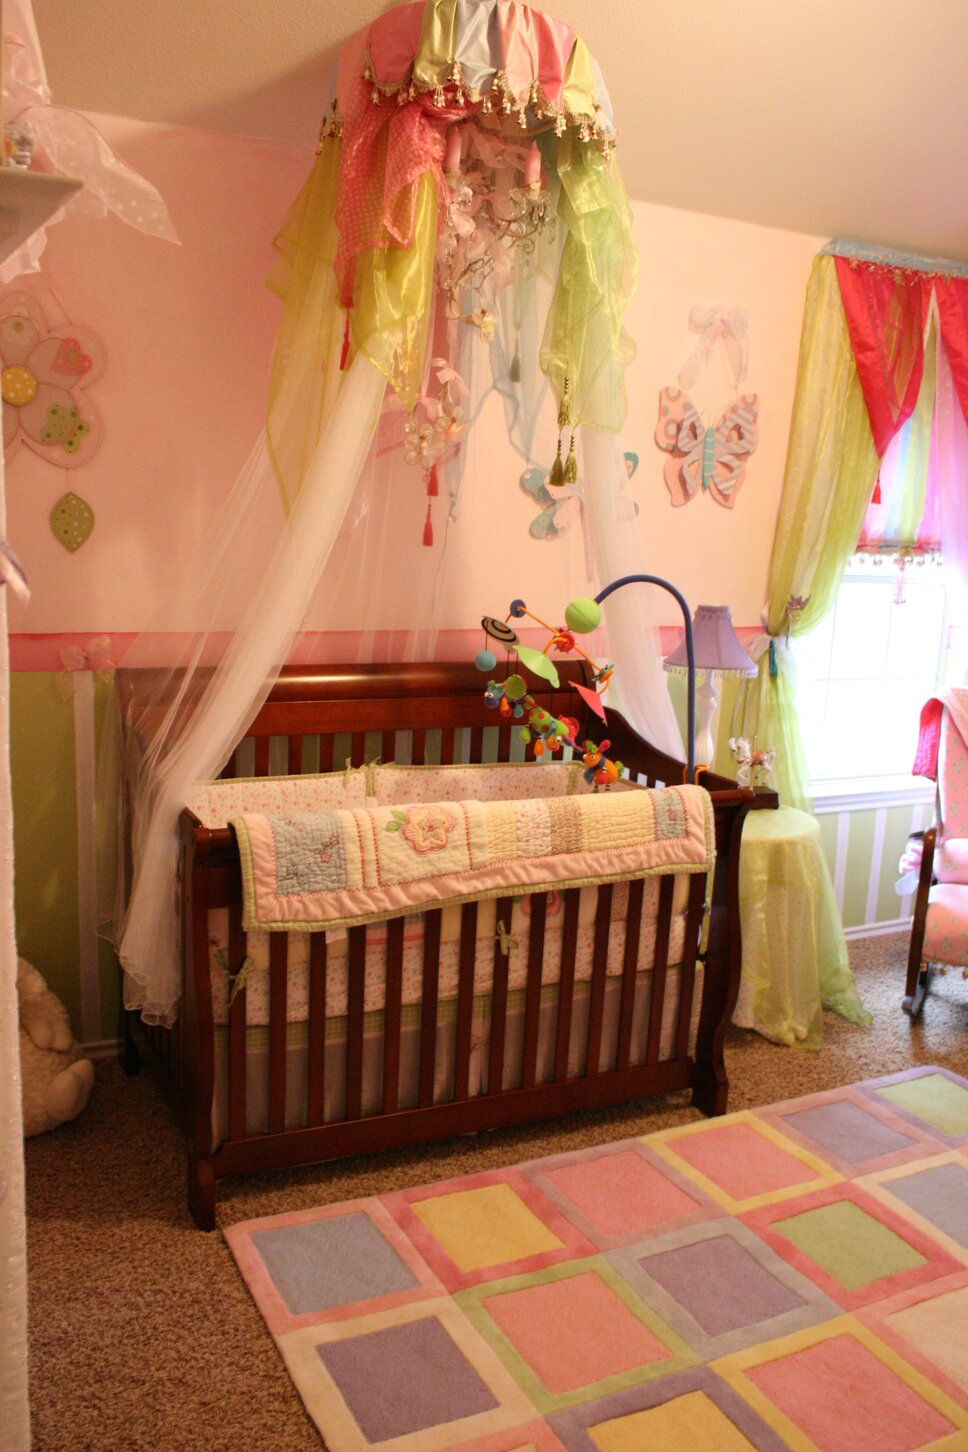 Design and Photography by Brandi Renee Day Eclectic Nursery design